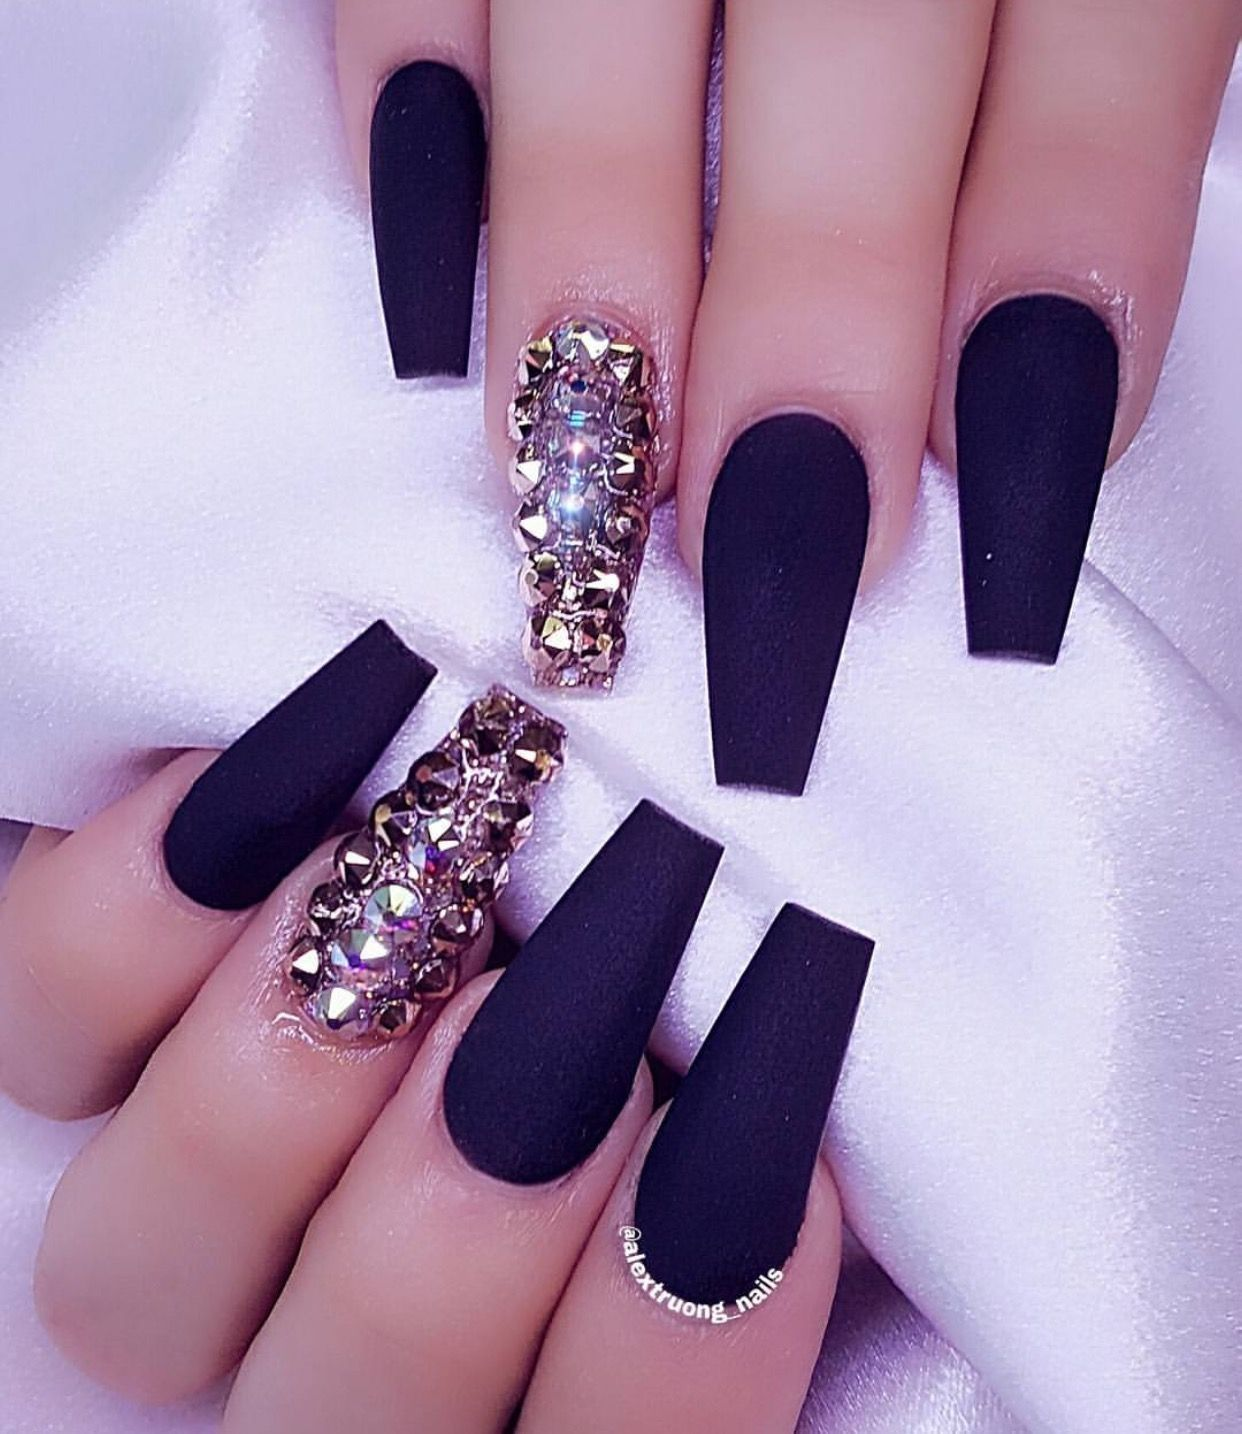 39 Beautiful And Stylish Nail Art Design You Can Try Acrylic Nails Coffin Glitter Stylish Nails Art Nails Design With Rhinestones